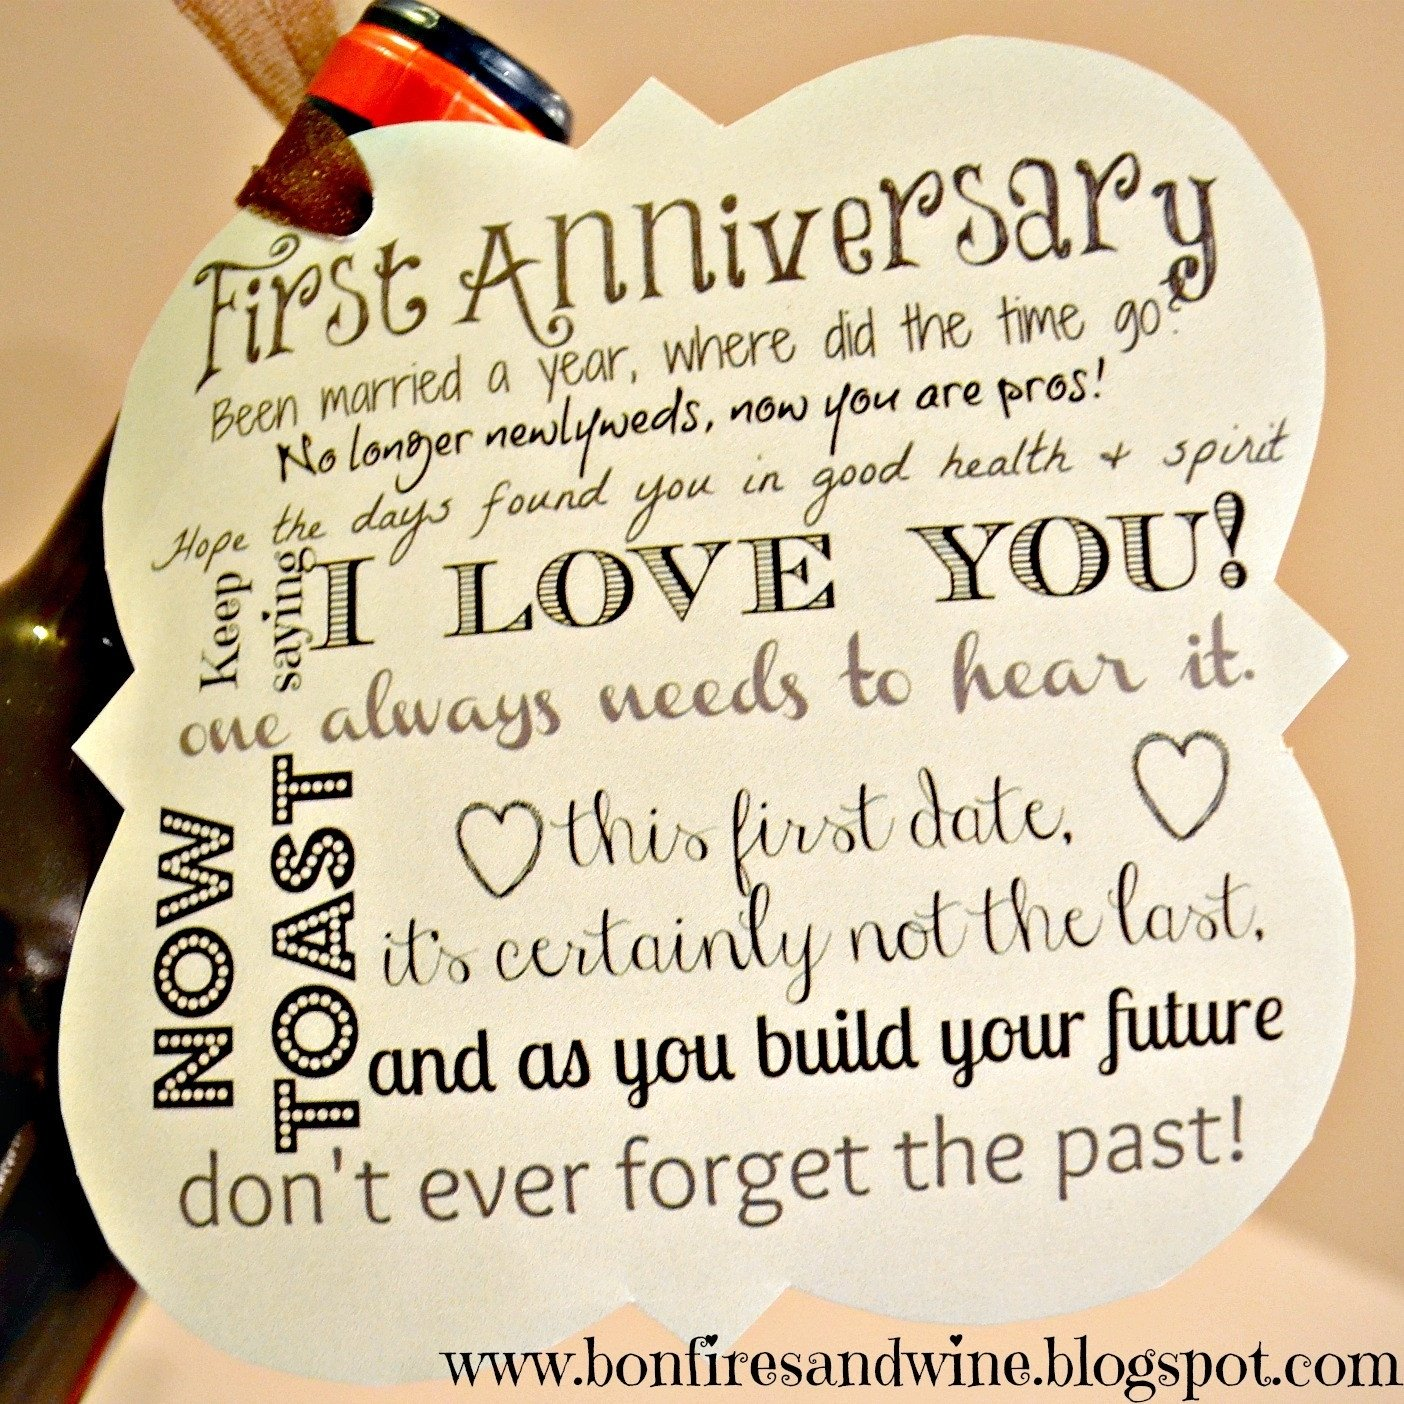 10 Fashionable One Year Anniversary Date Ideas stunning one year wedding anniversary gifts for husband gallery 2020